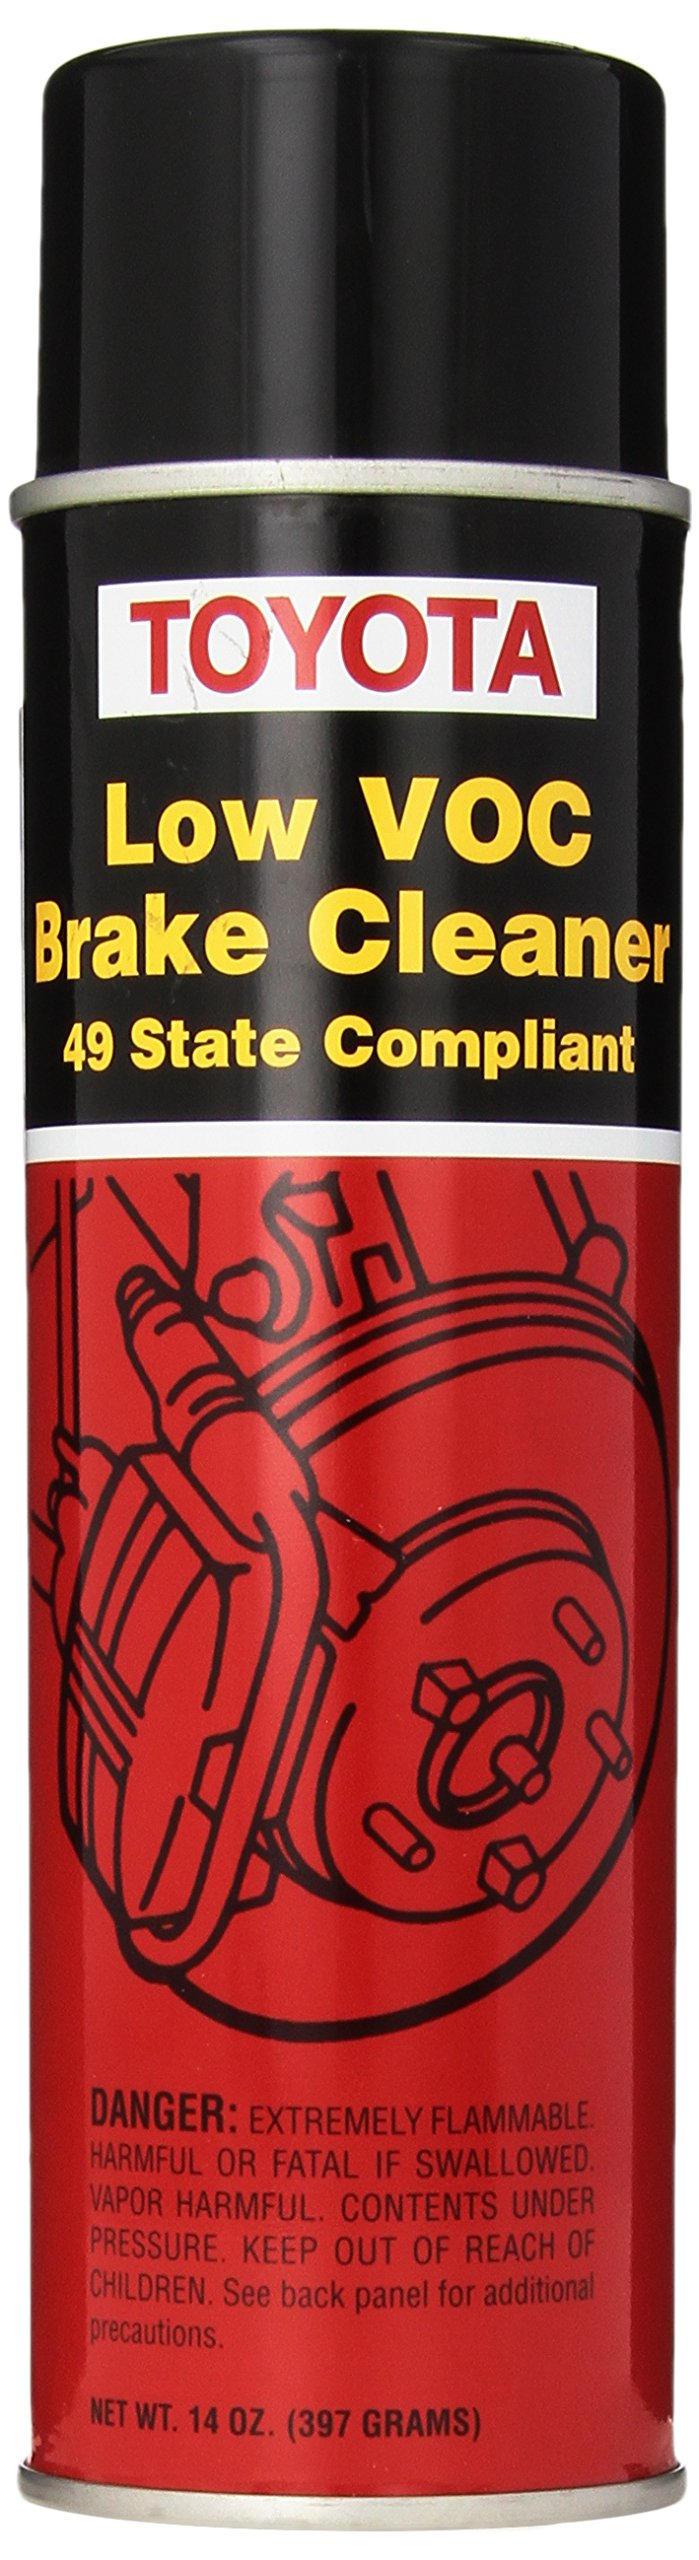 Genuine Toyota Fluid 00289-2BC00 Non-Chlorinated Brake Cleaner - 14 oz. Can